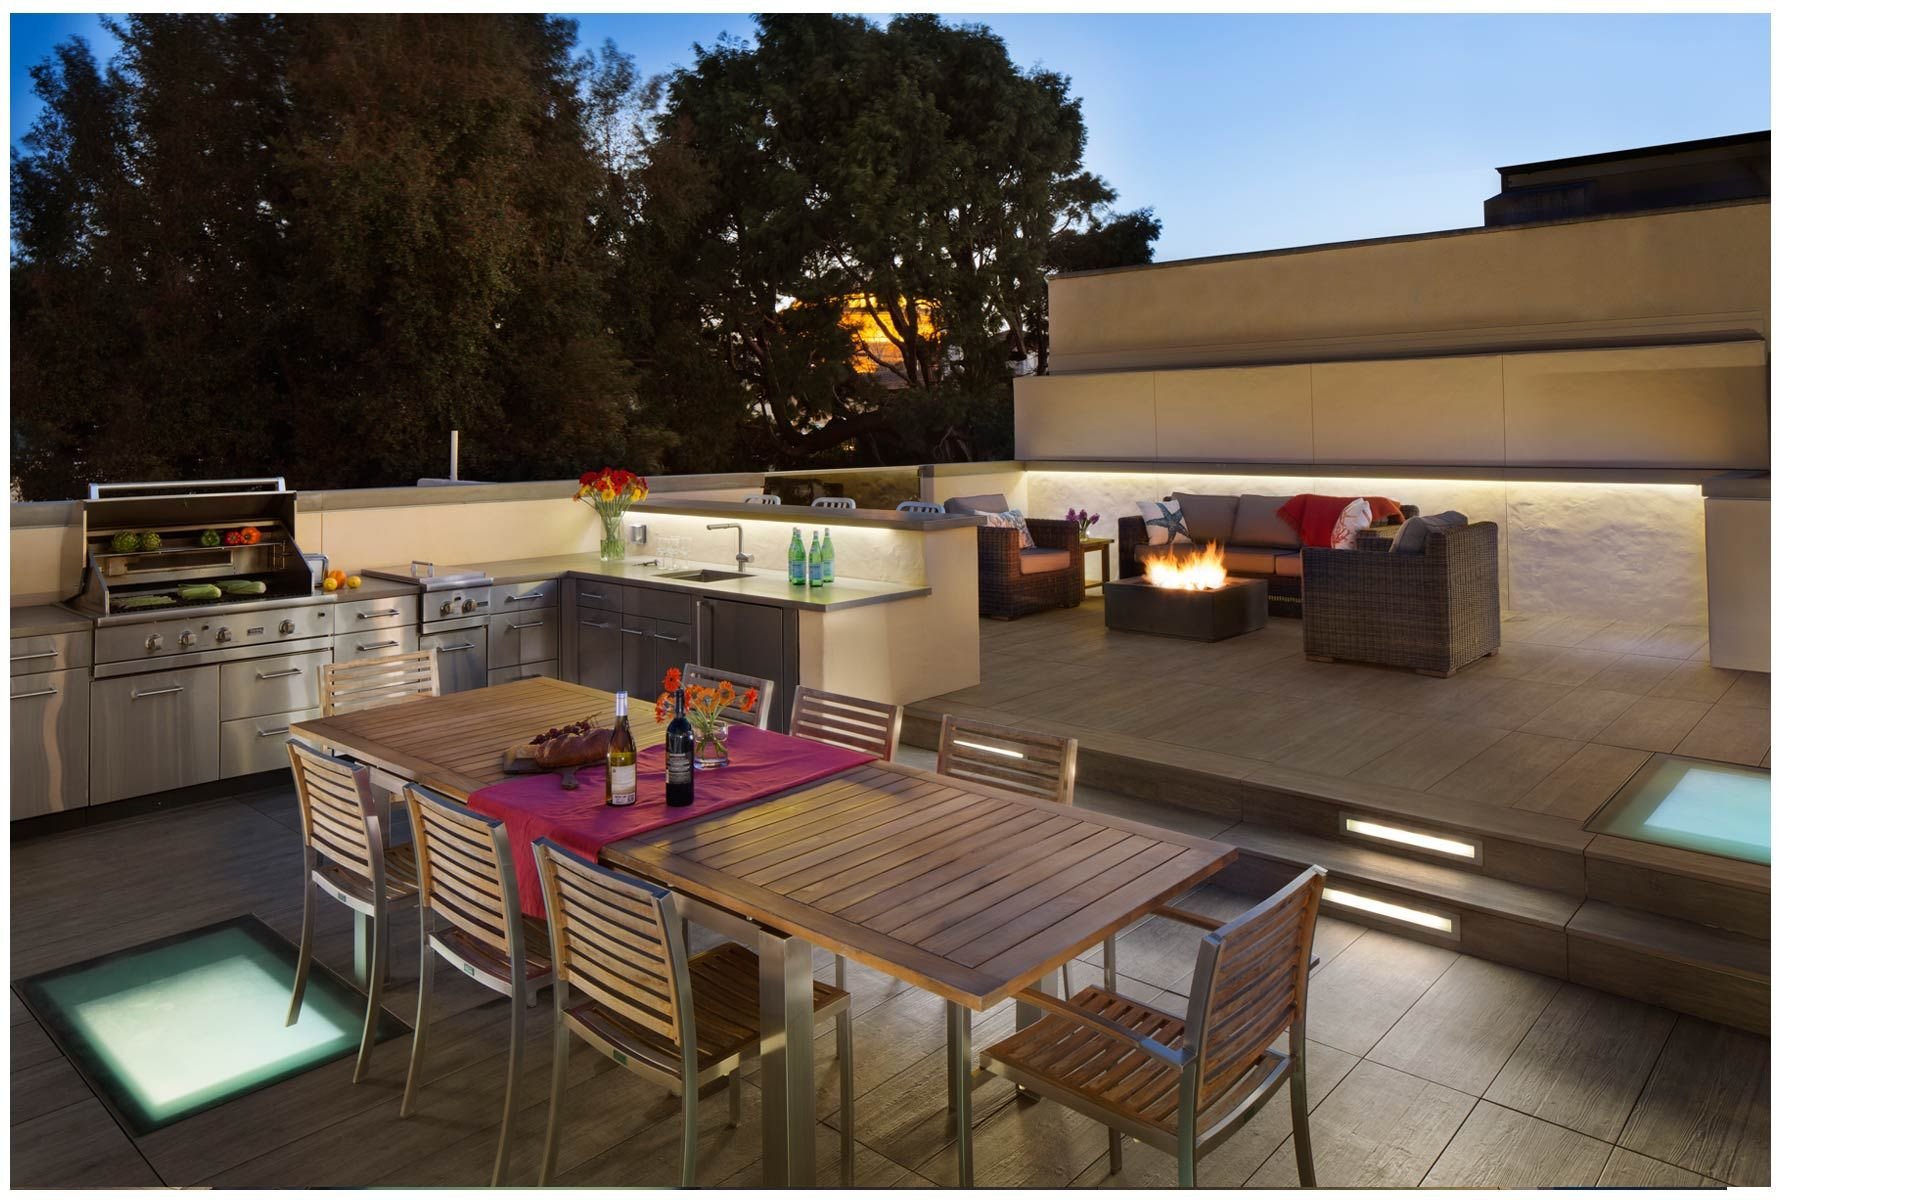 This roof deck renovation includes an outdoor kitchen fire pit